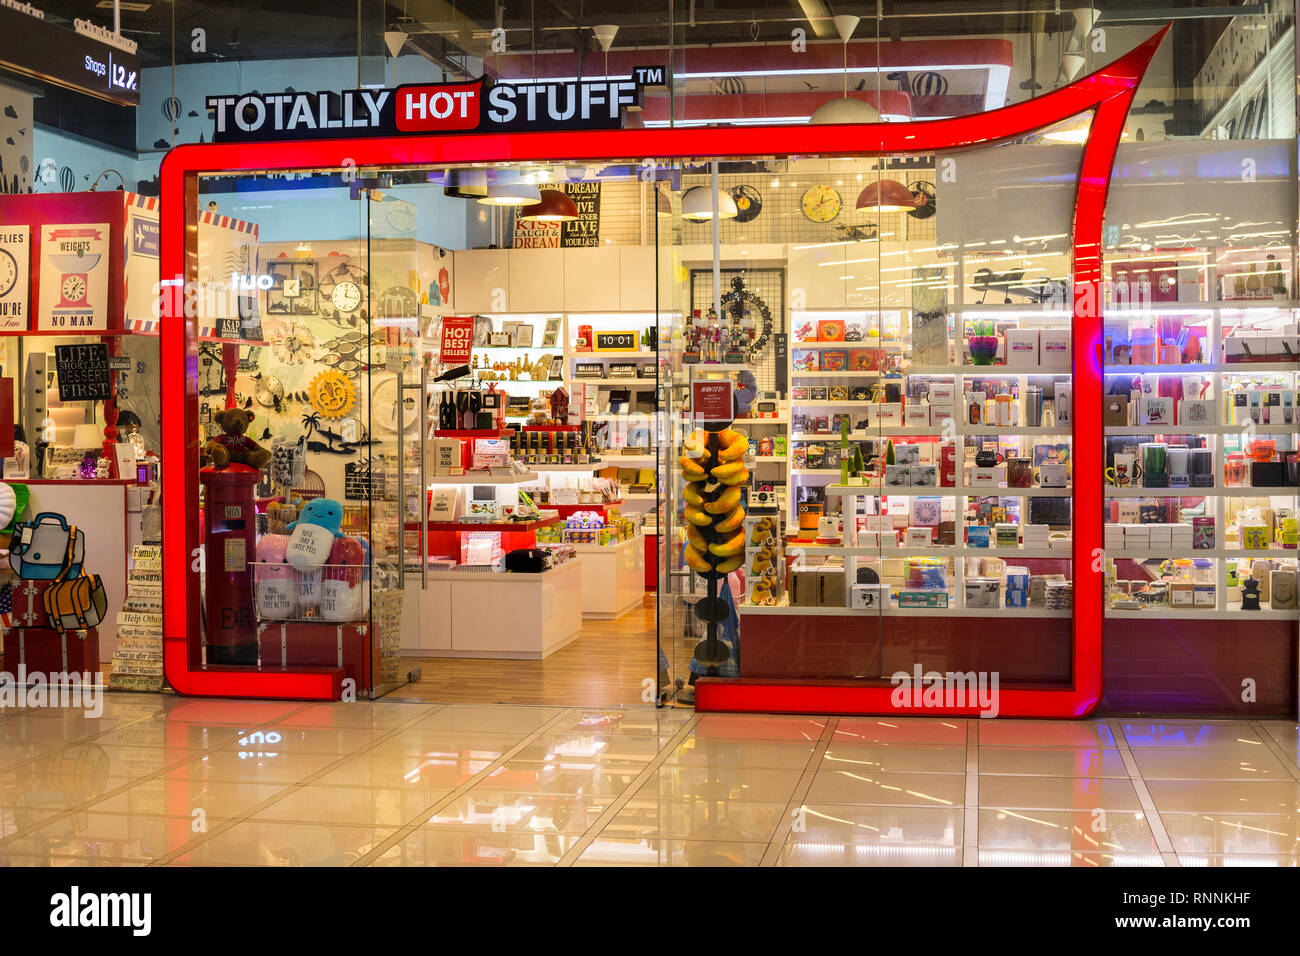 Singapore. Gadgets and Sundry Items Store in Orchard Gateway Mall, Orchard Road. - Stock Image